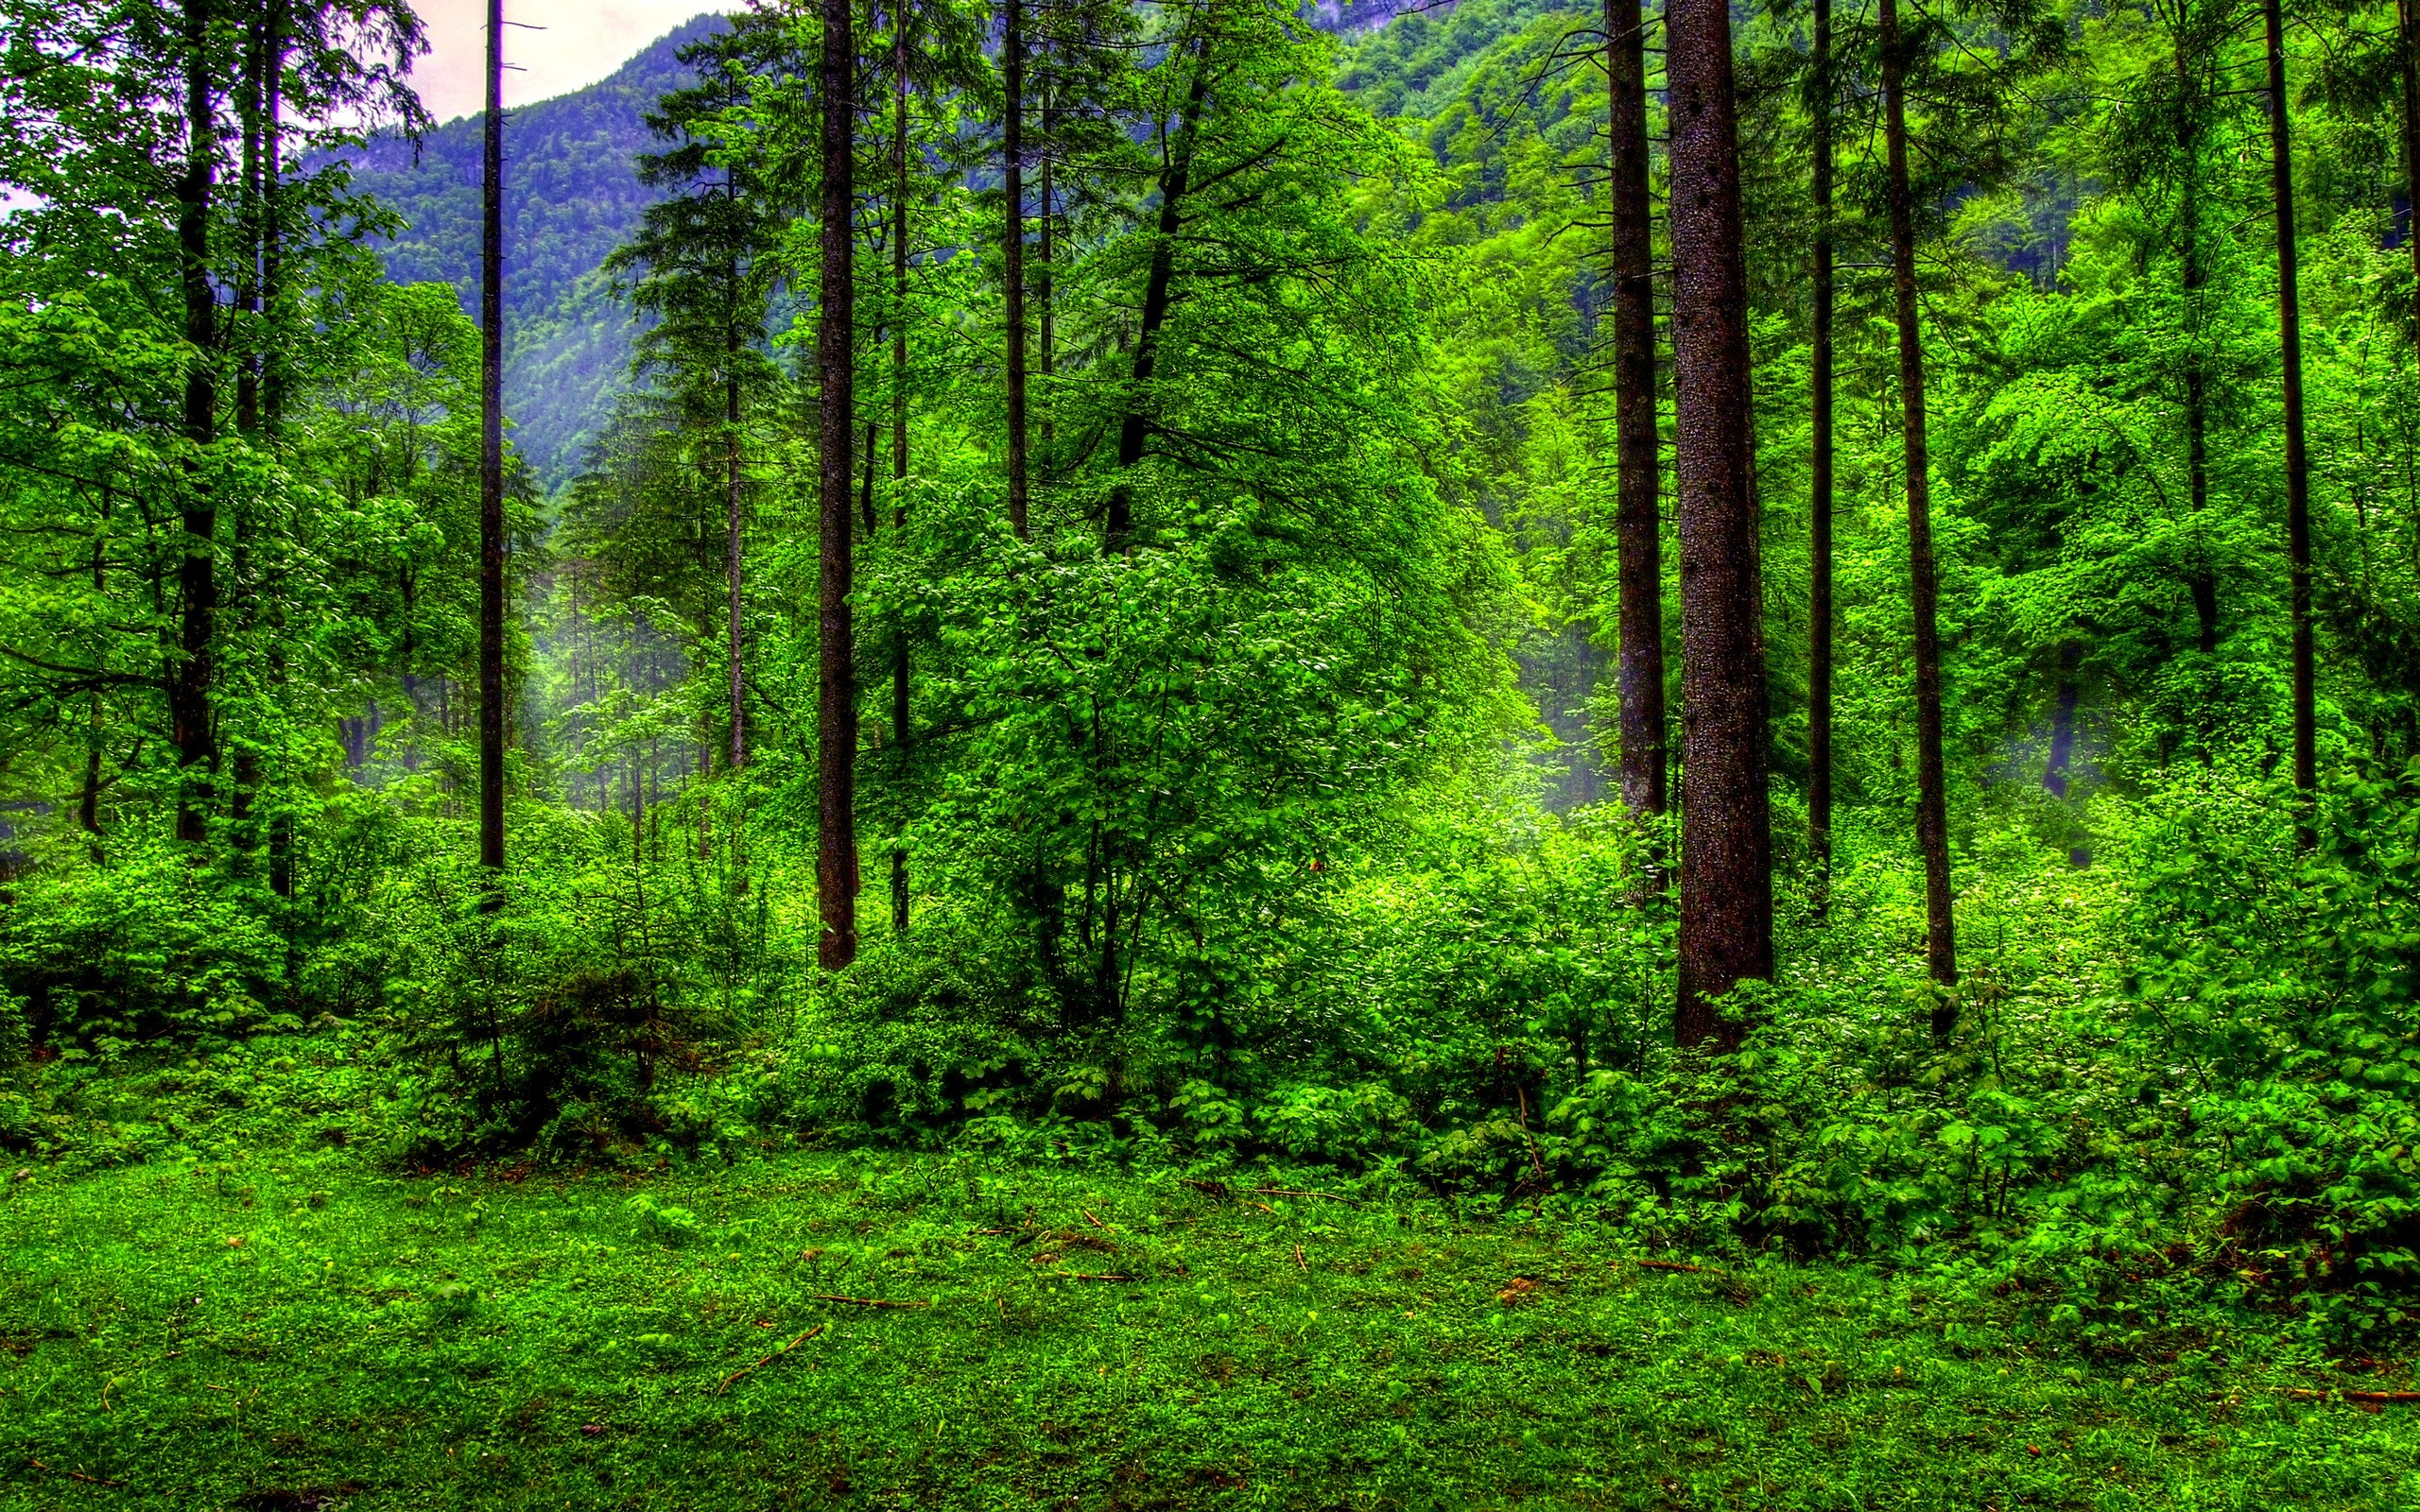 Greenforest Wallpaper Picture Hd Pics Green Forest Background For ...